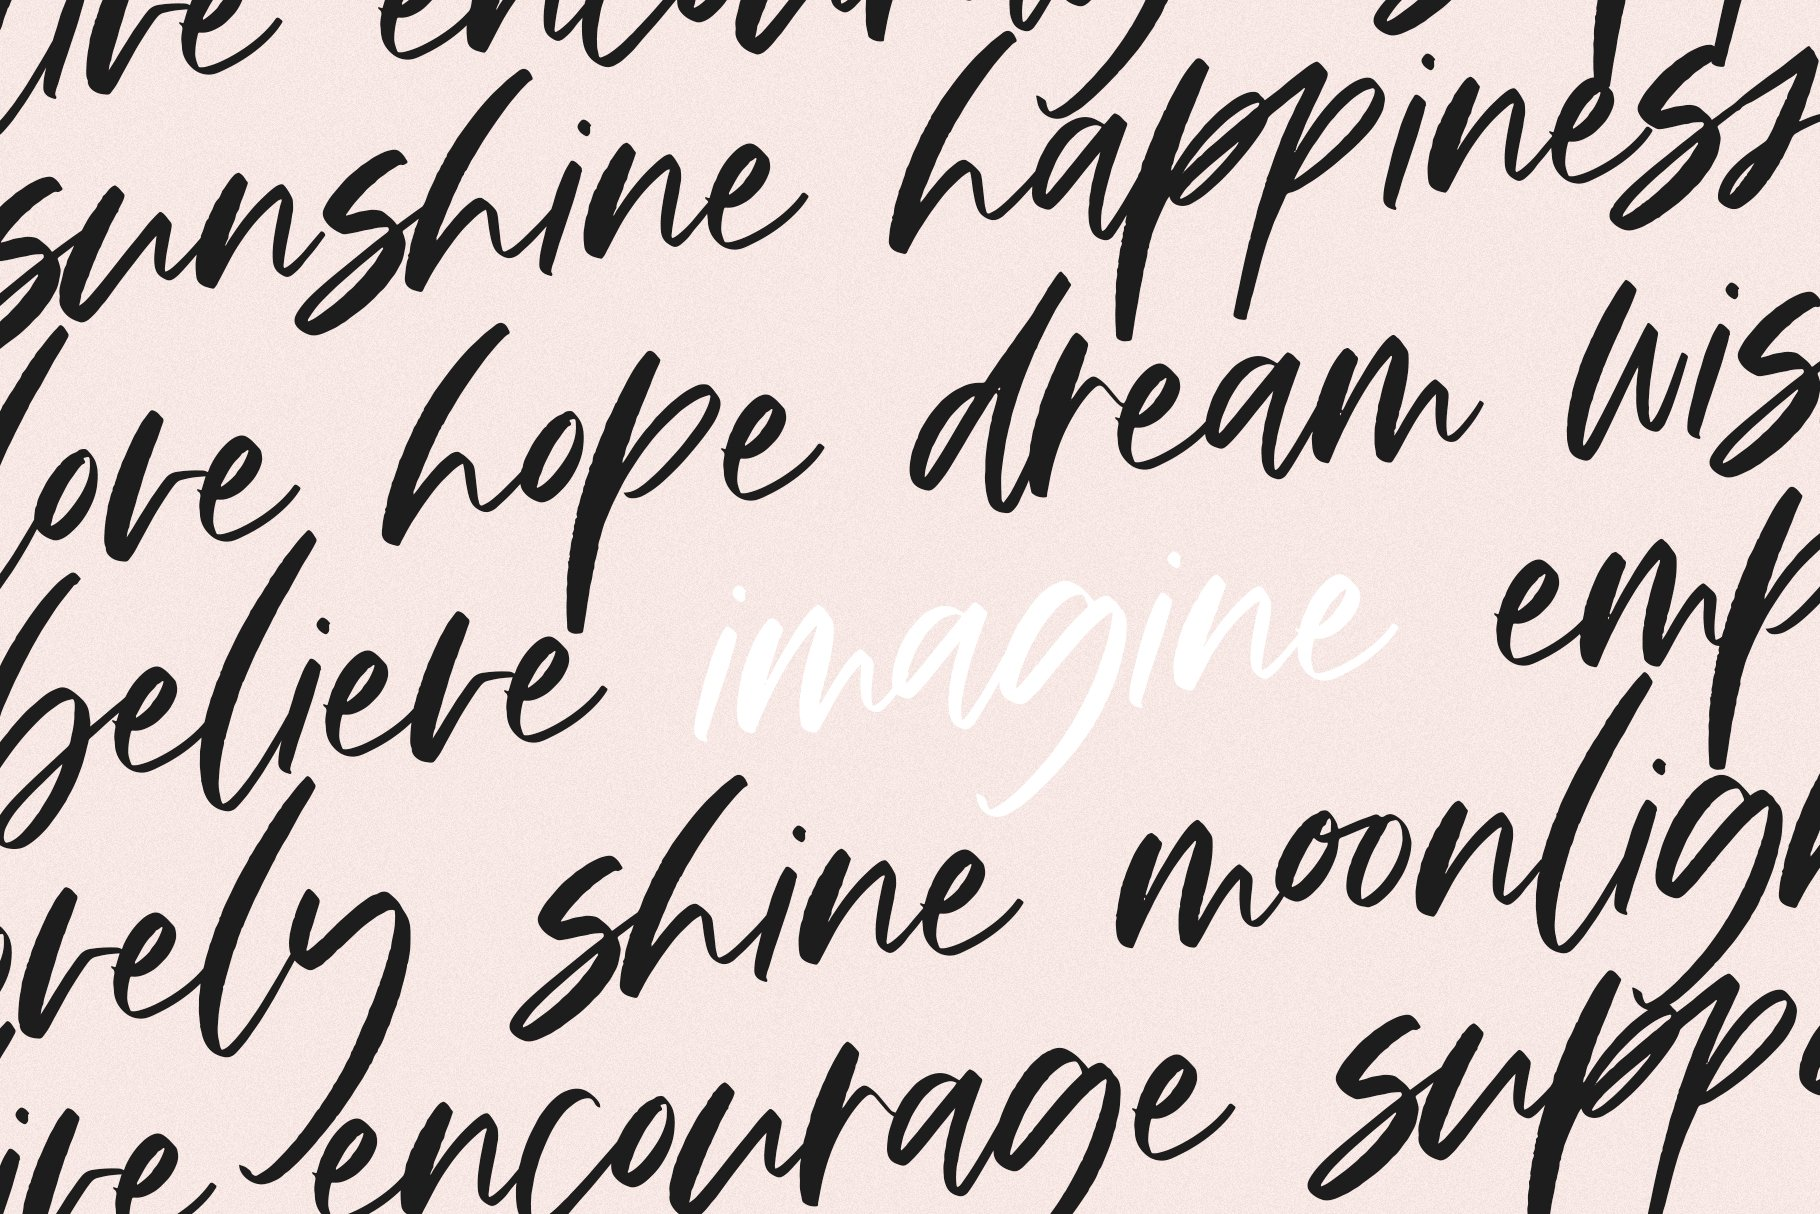 Happiness - A Handwritten Script Font example image 2